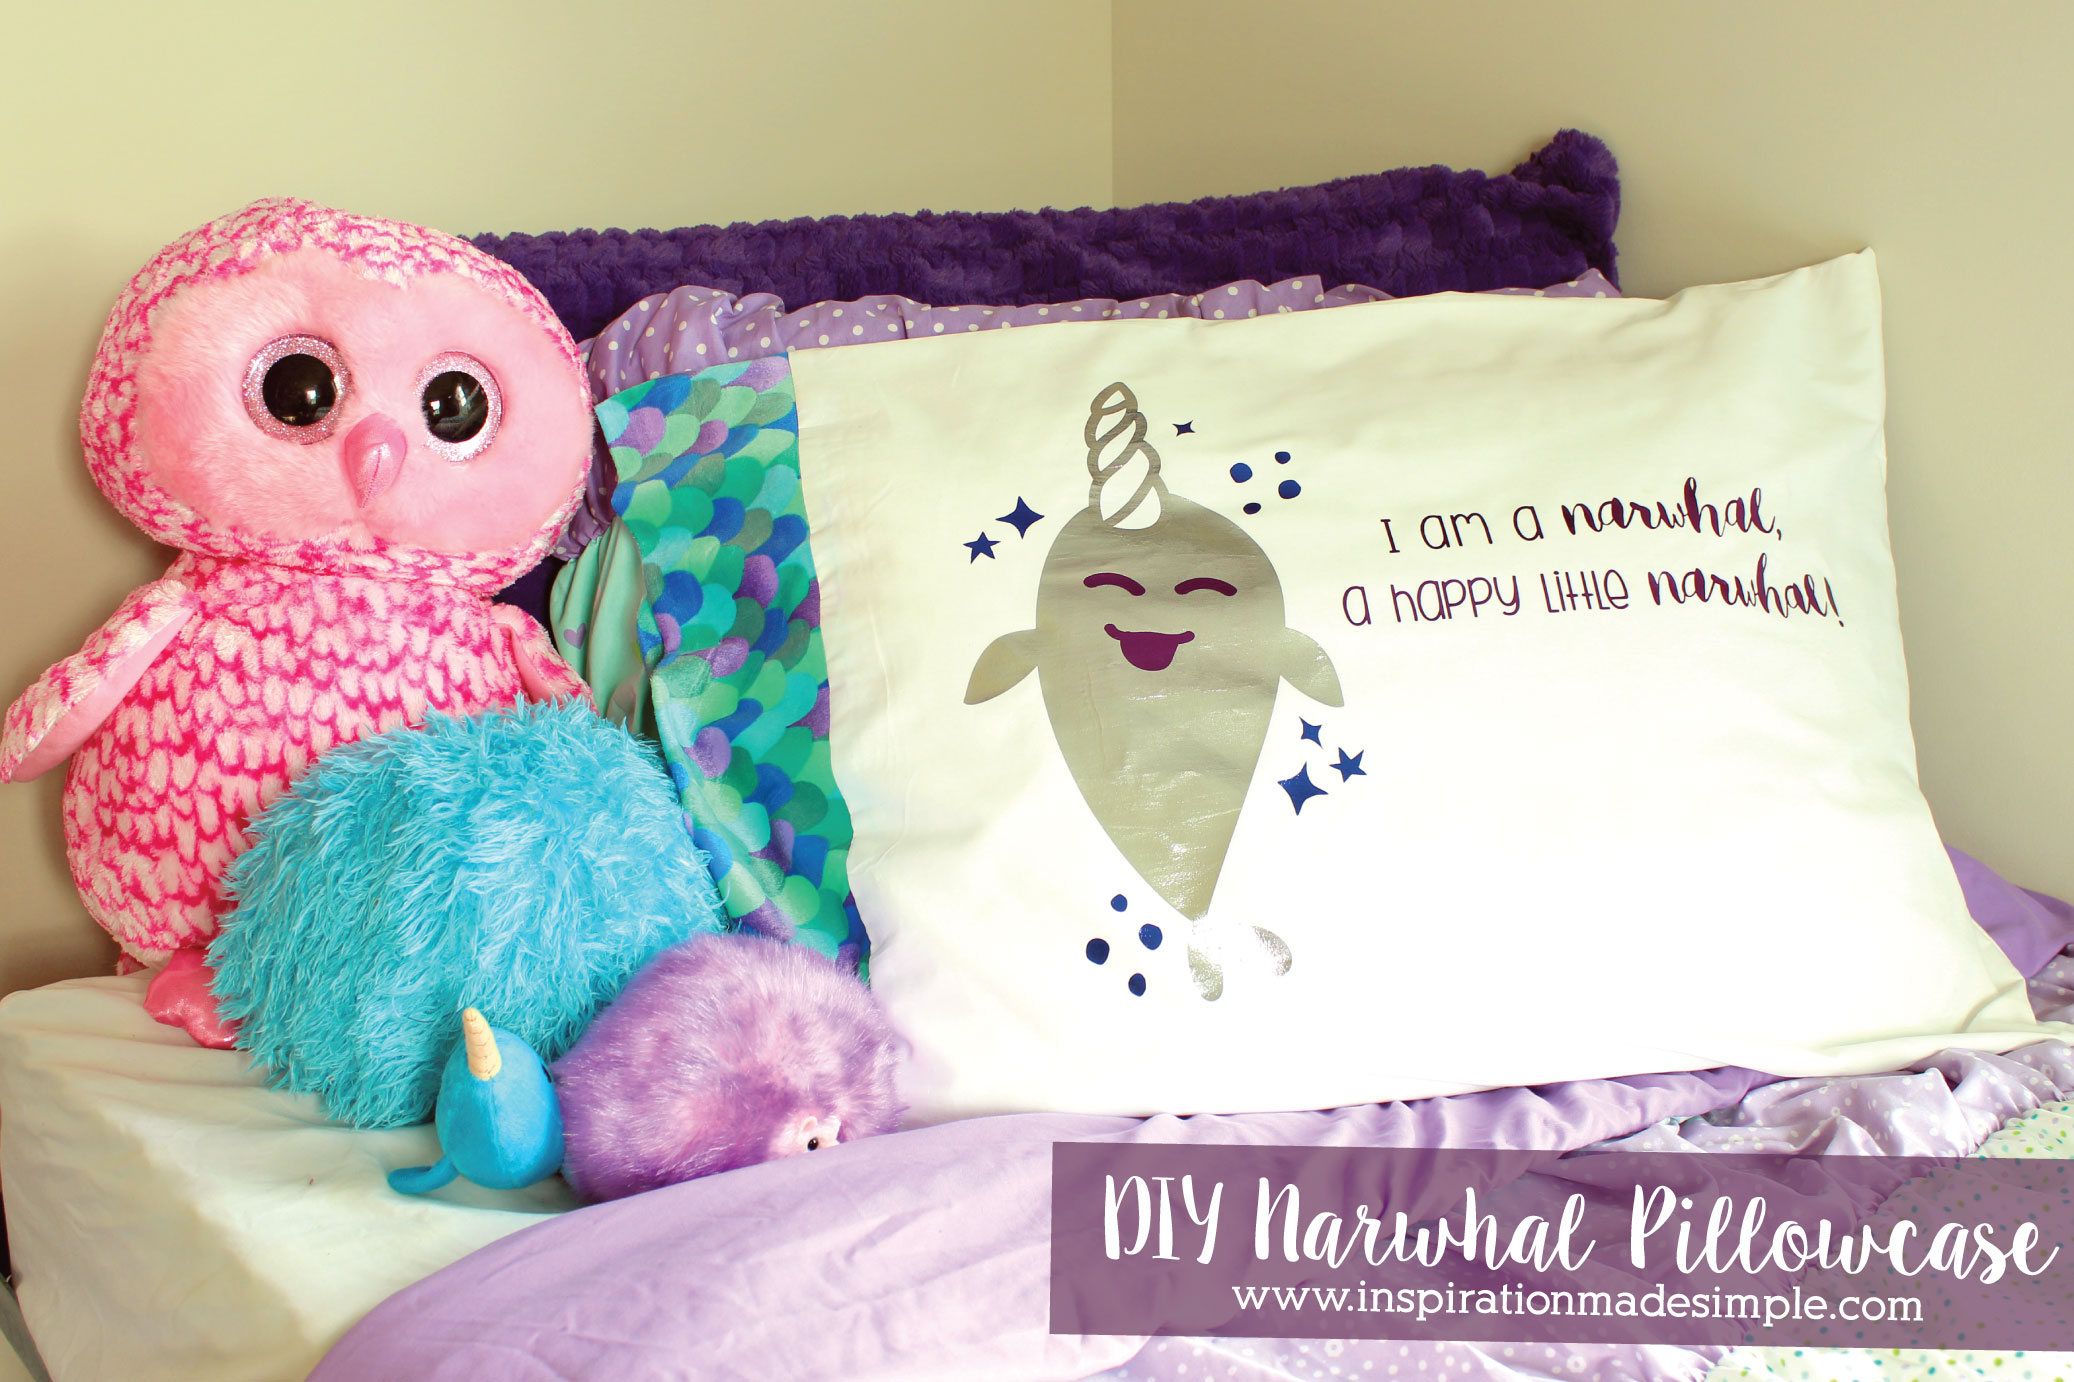 DIY Narwhal Pillowcase